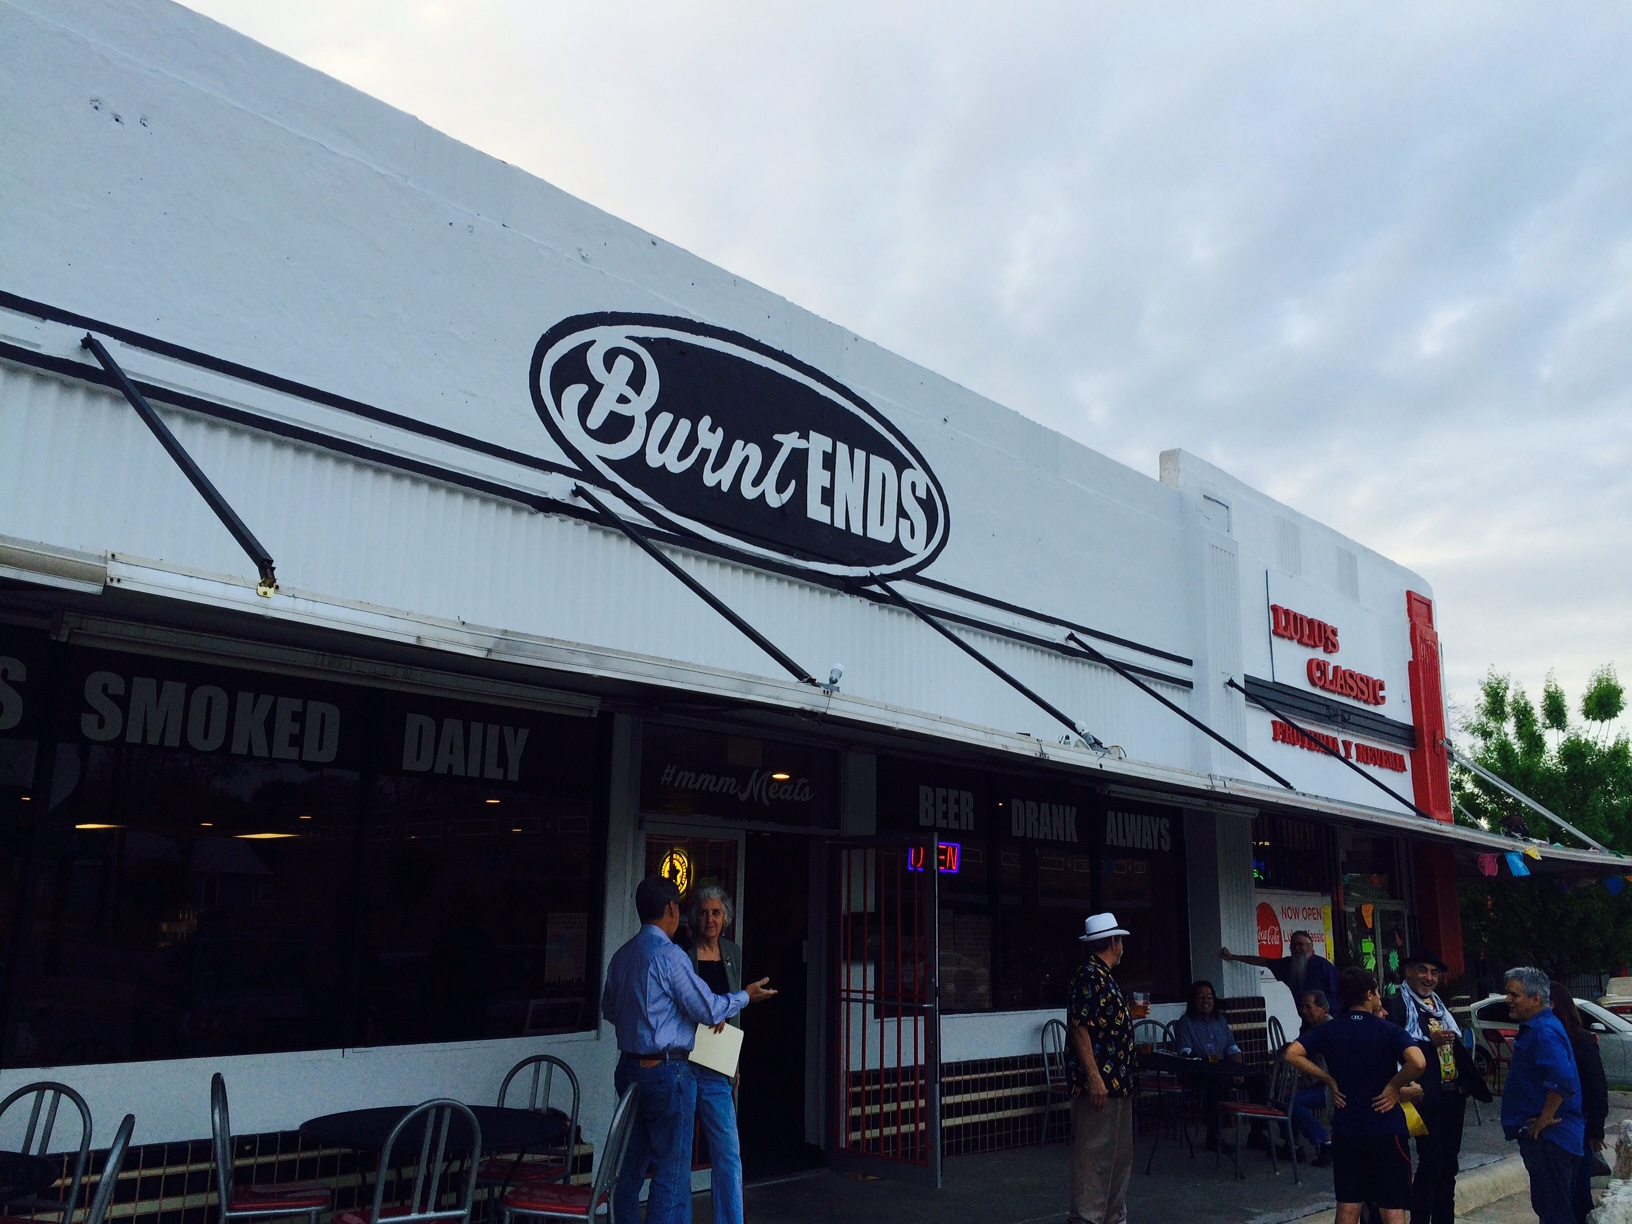 Musicians and patrons hang outside of Burnt Ends BBQ. Photo courtesy of Adam Tutor